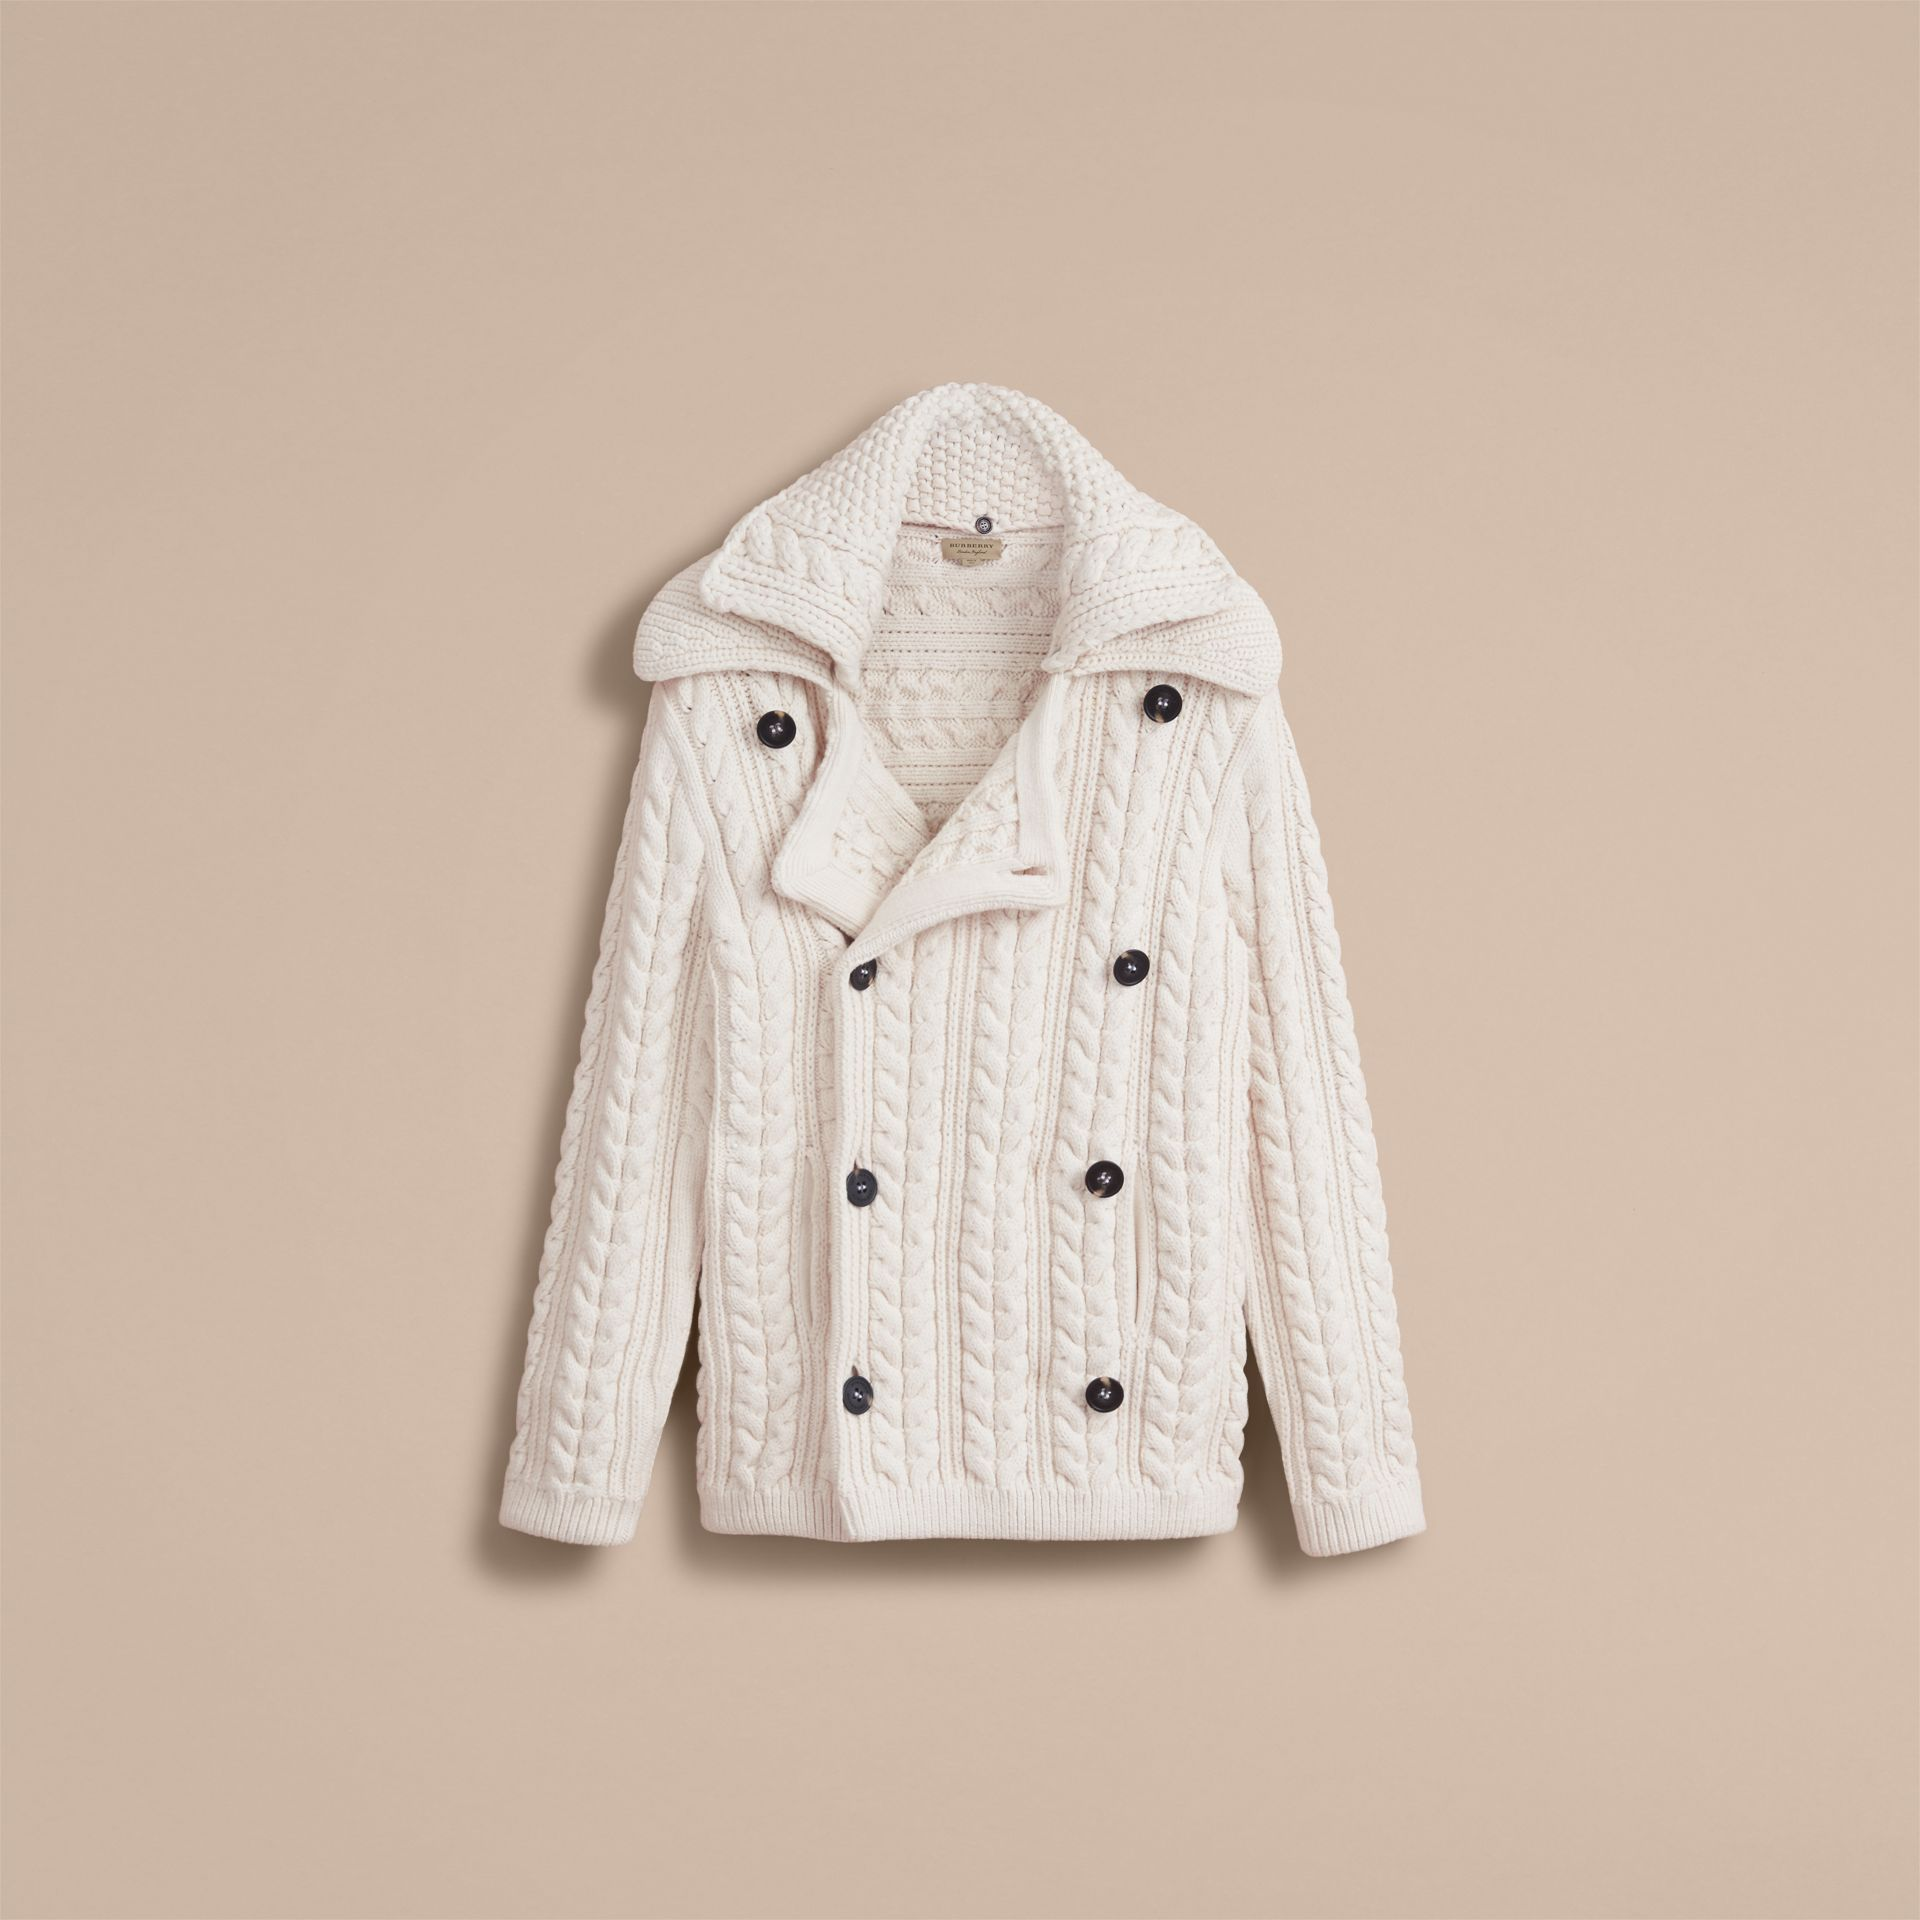 Aran Knit Technical Cotton Jacket in Natural White - Men | Burberry - gallery image 4